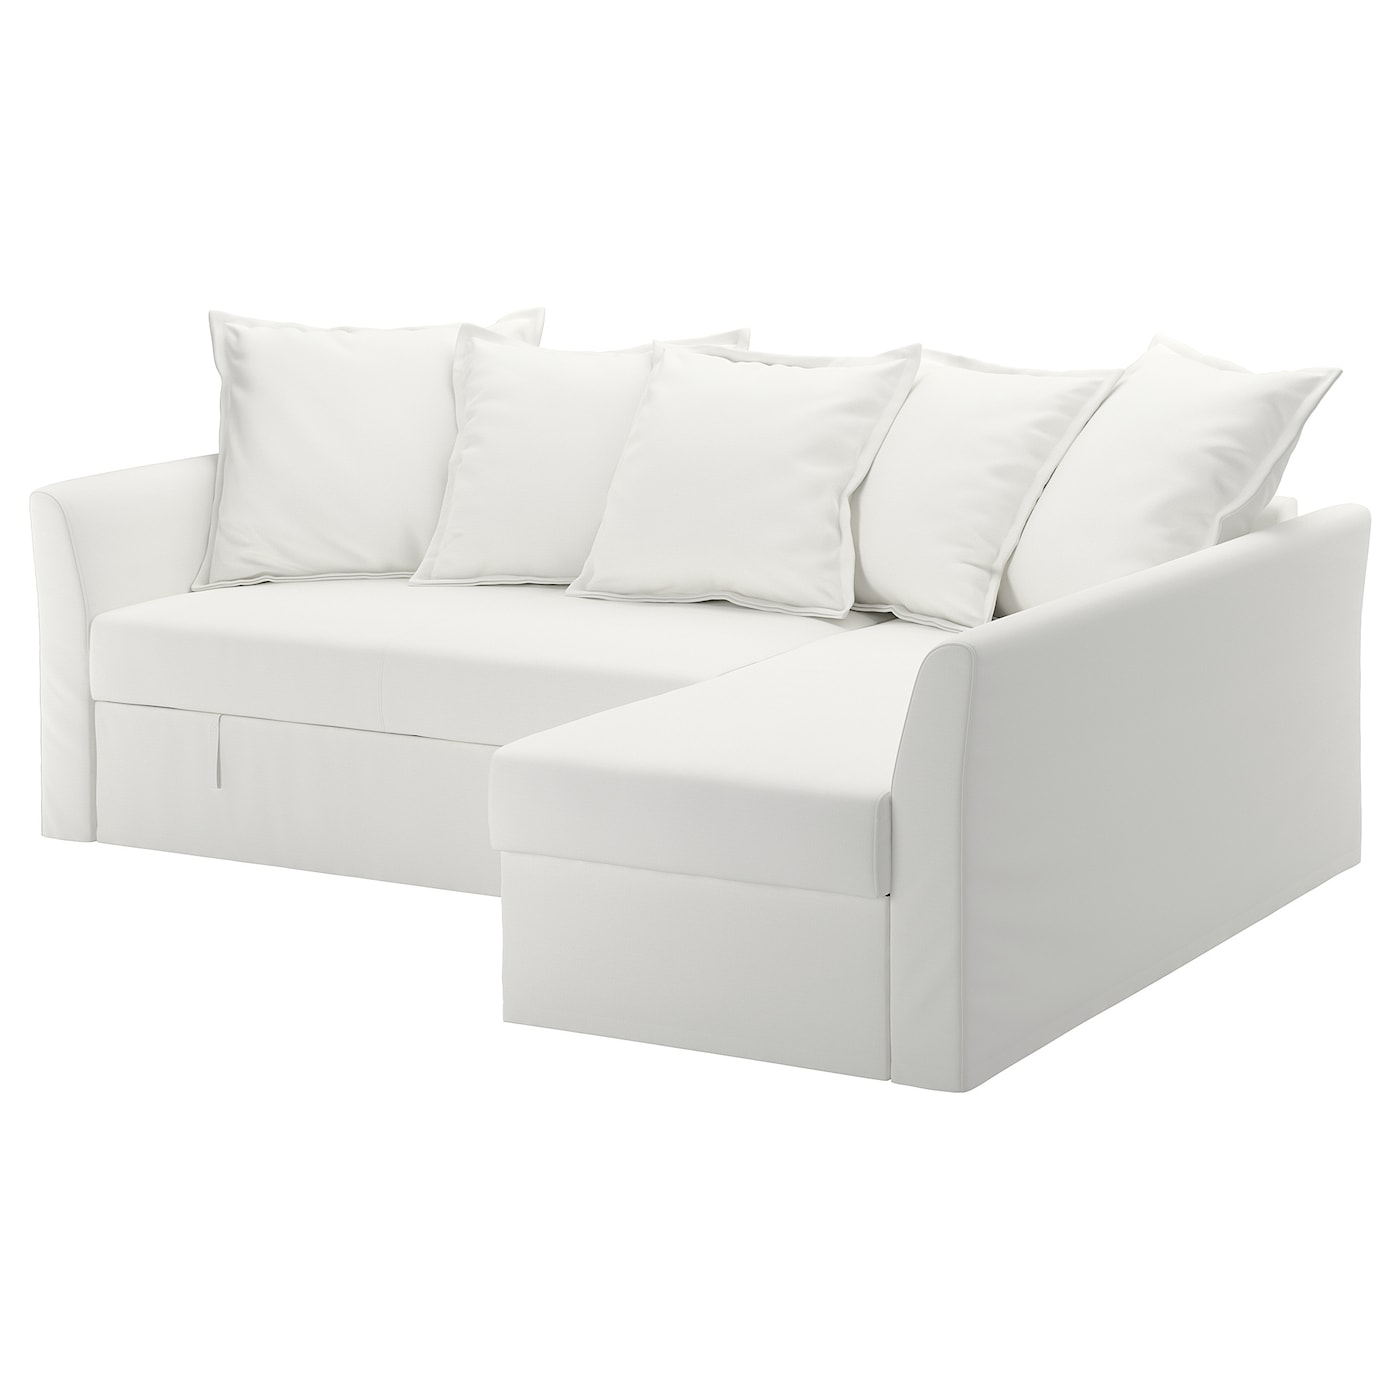 white corner sofa le white corner leather sofa for house. Black Bedroom Furniture Sets. Home Design Ideas